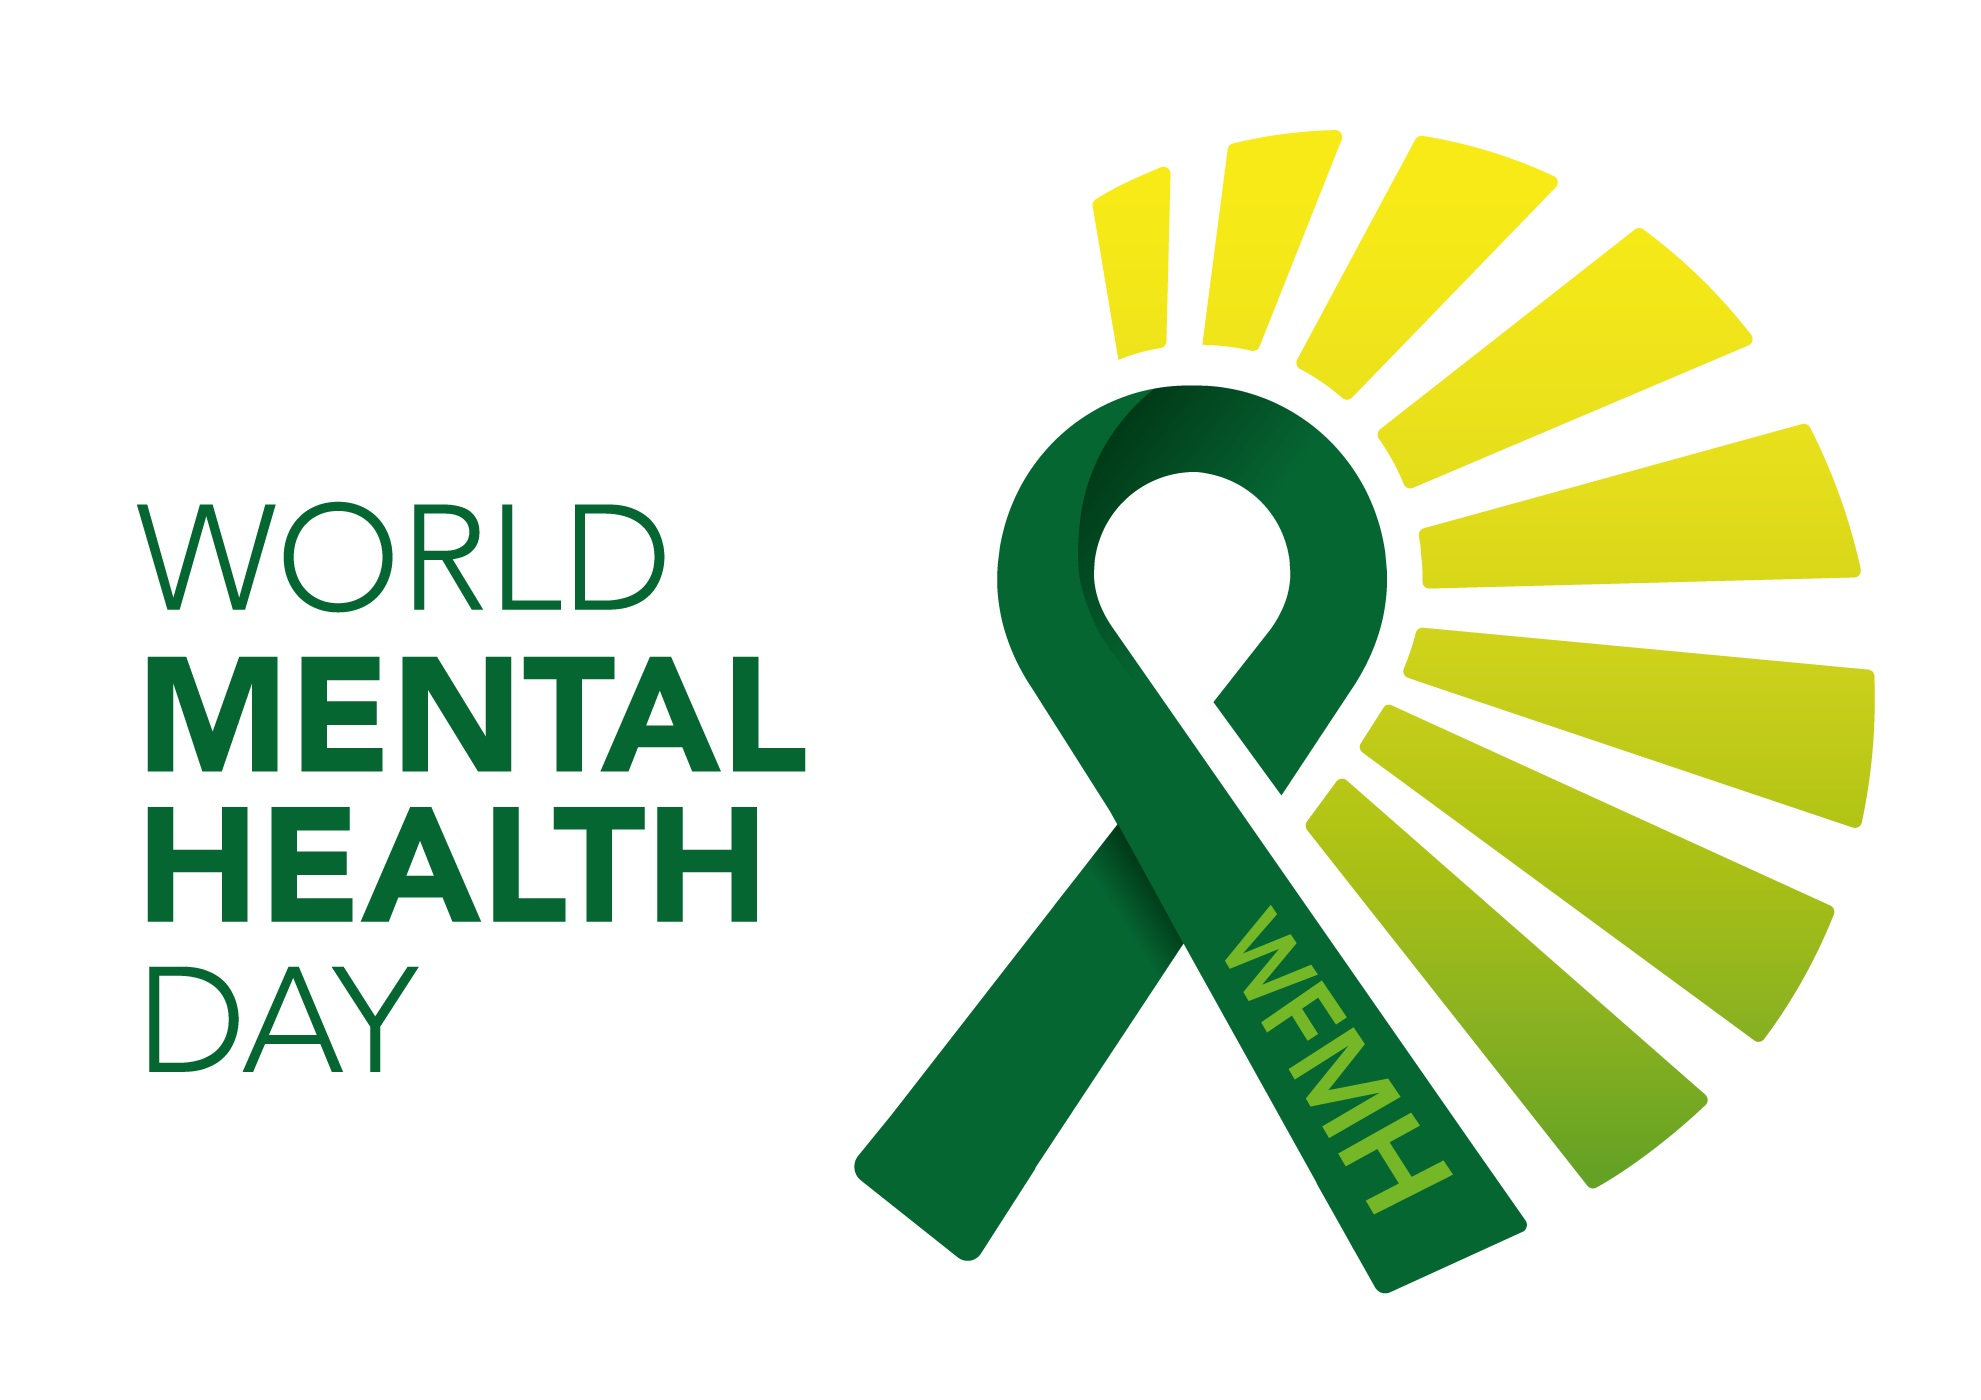 10 October is World Mental Health Day